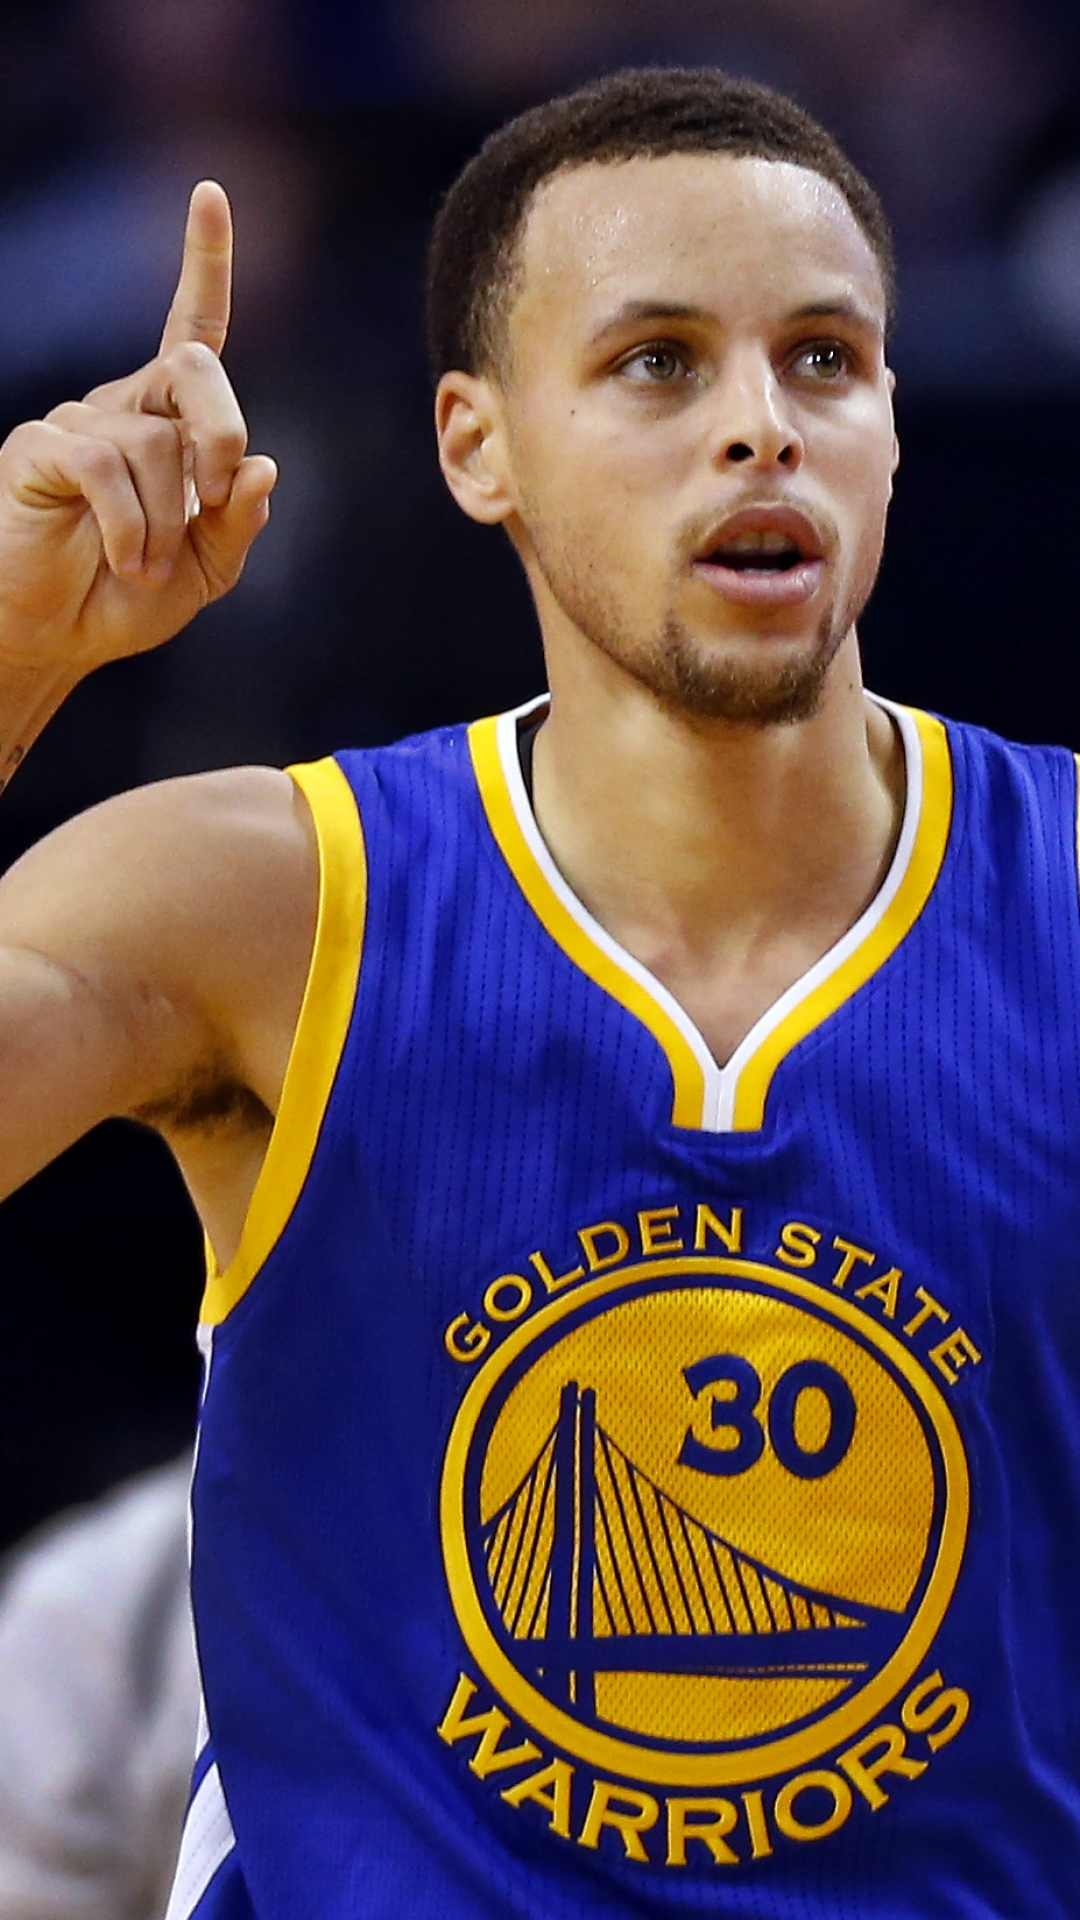 Download-1080x1920-Stephen-curry-Golden-state-warriors-wallpaper-wp3804789